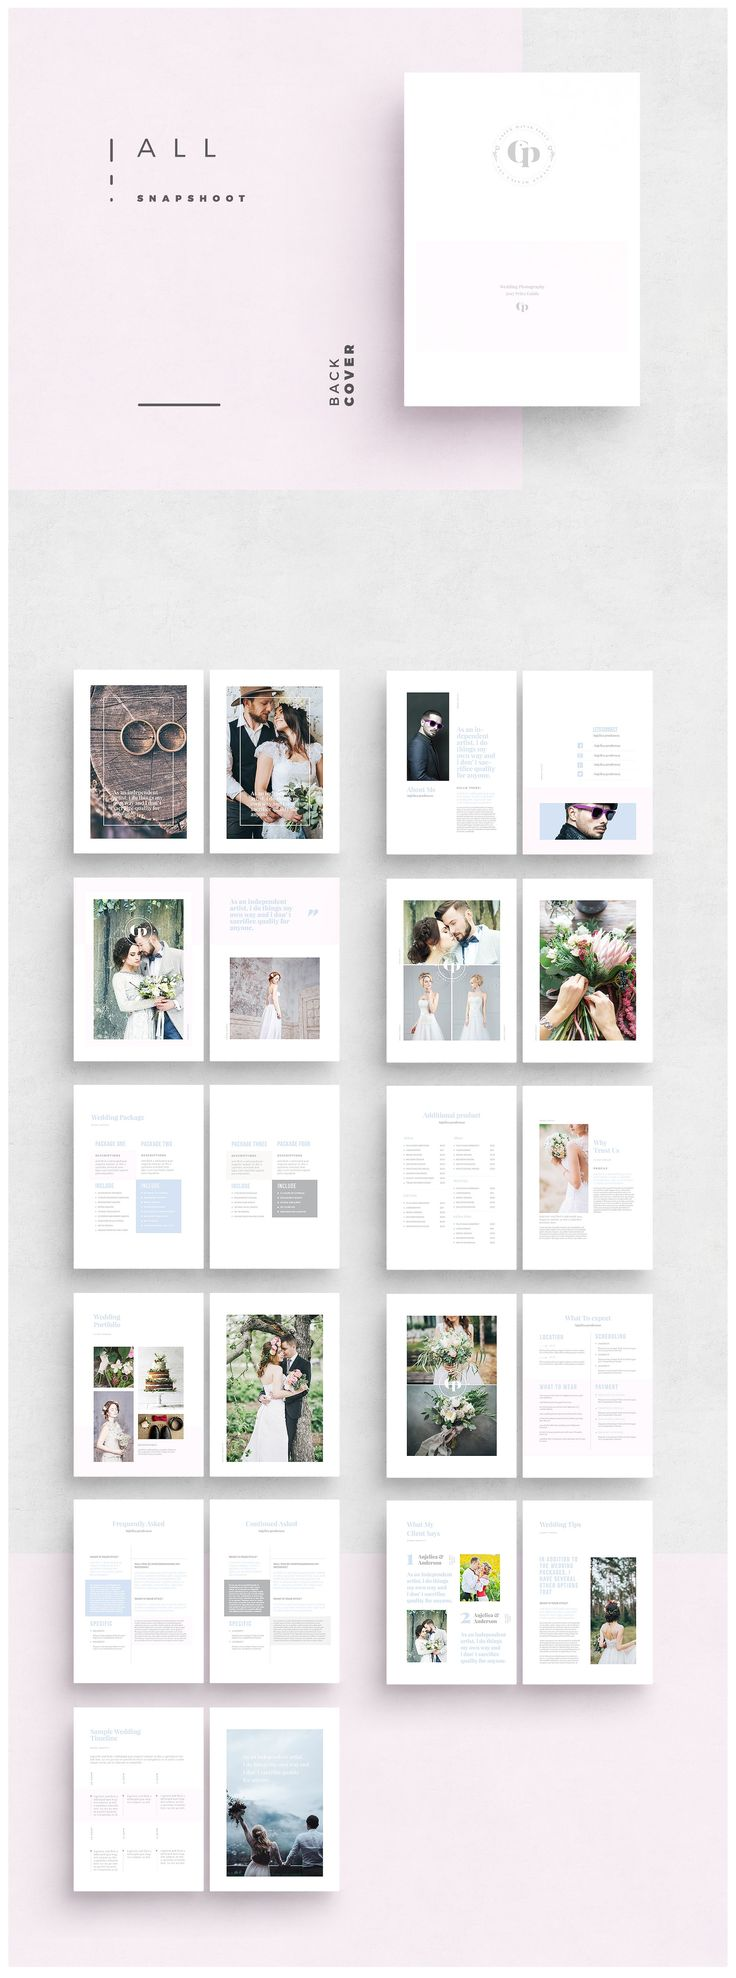 die besten 25 hochzeitsbuch layout ideen auf pinterest hochzeit sammelalbum scrapbooking. Black Bedroom Furniture Sets. Home Design Ideas